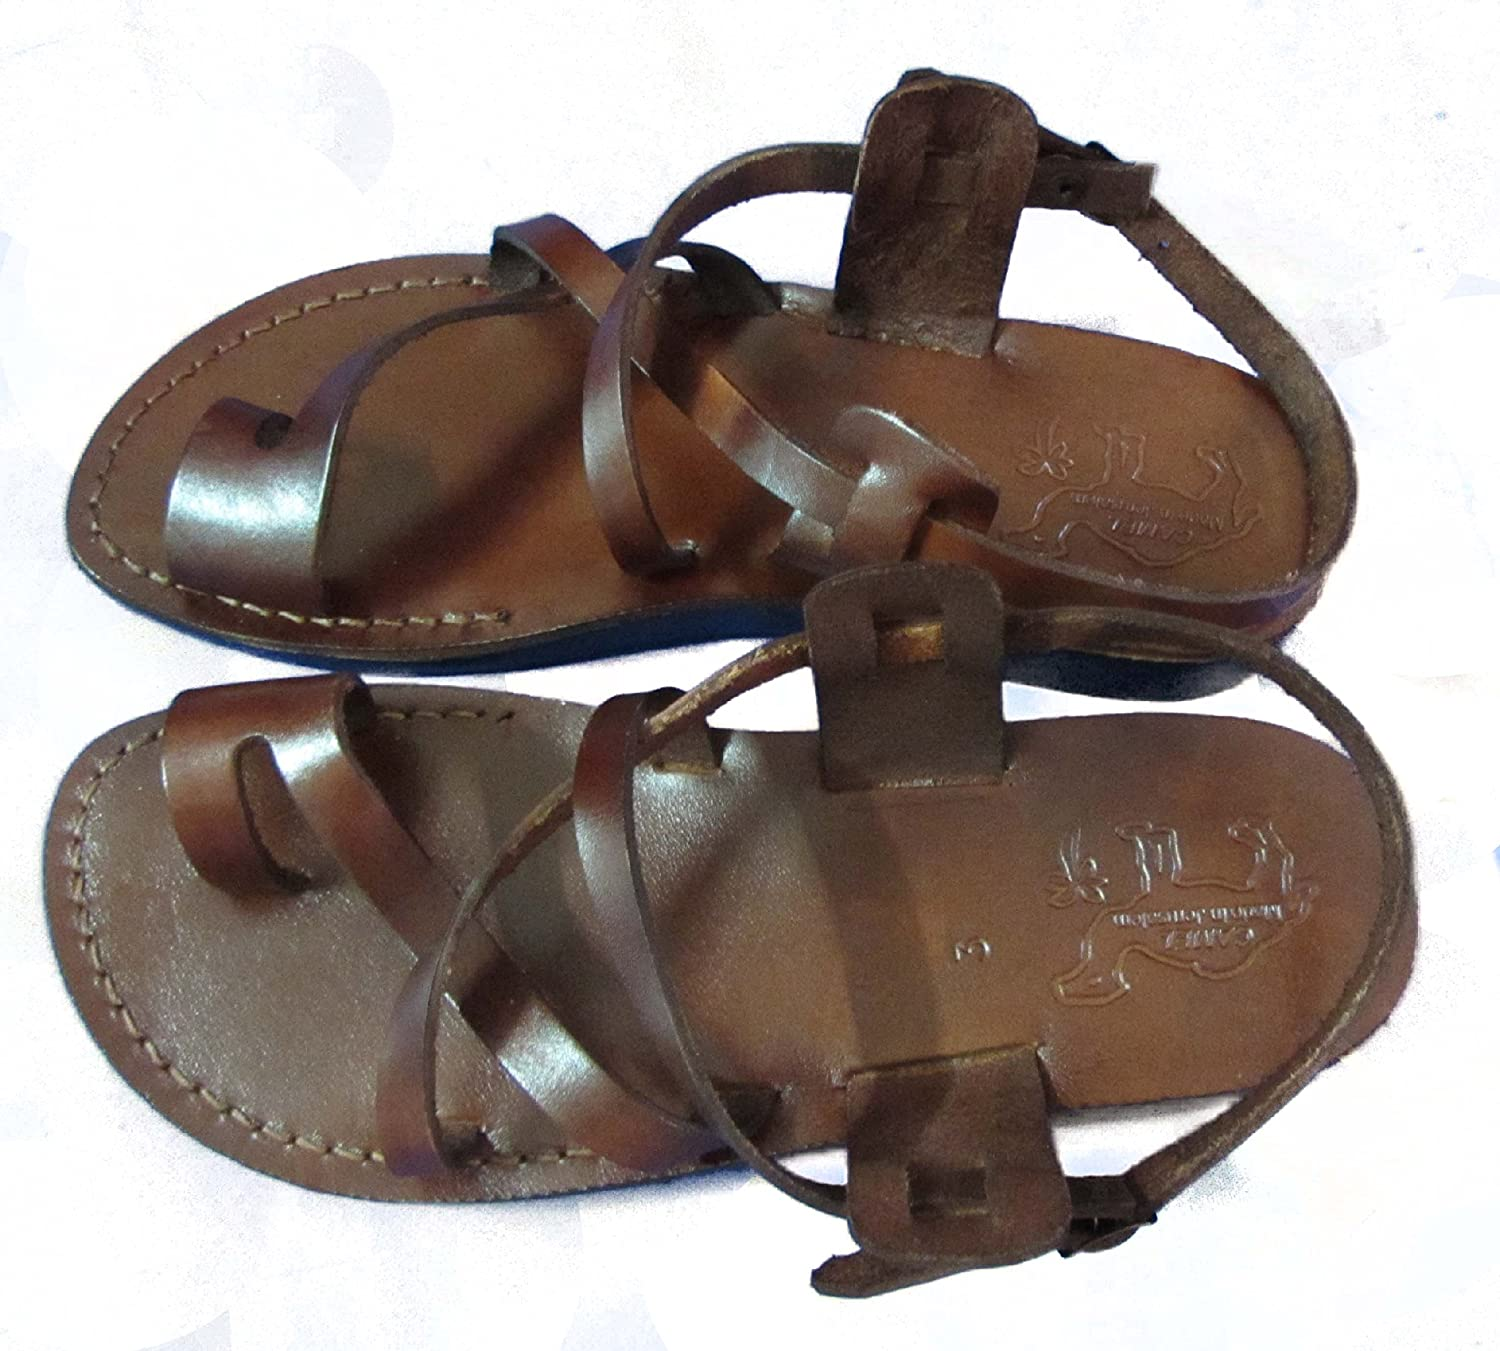 Brown Leather Size US Men's 8.5 Women's 10 EU42 Greek Roman Jesus Biblical Sandals Style 506 B00LT0CQ6Q Parent